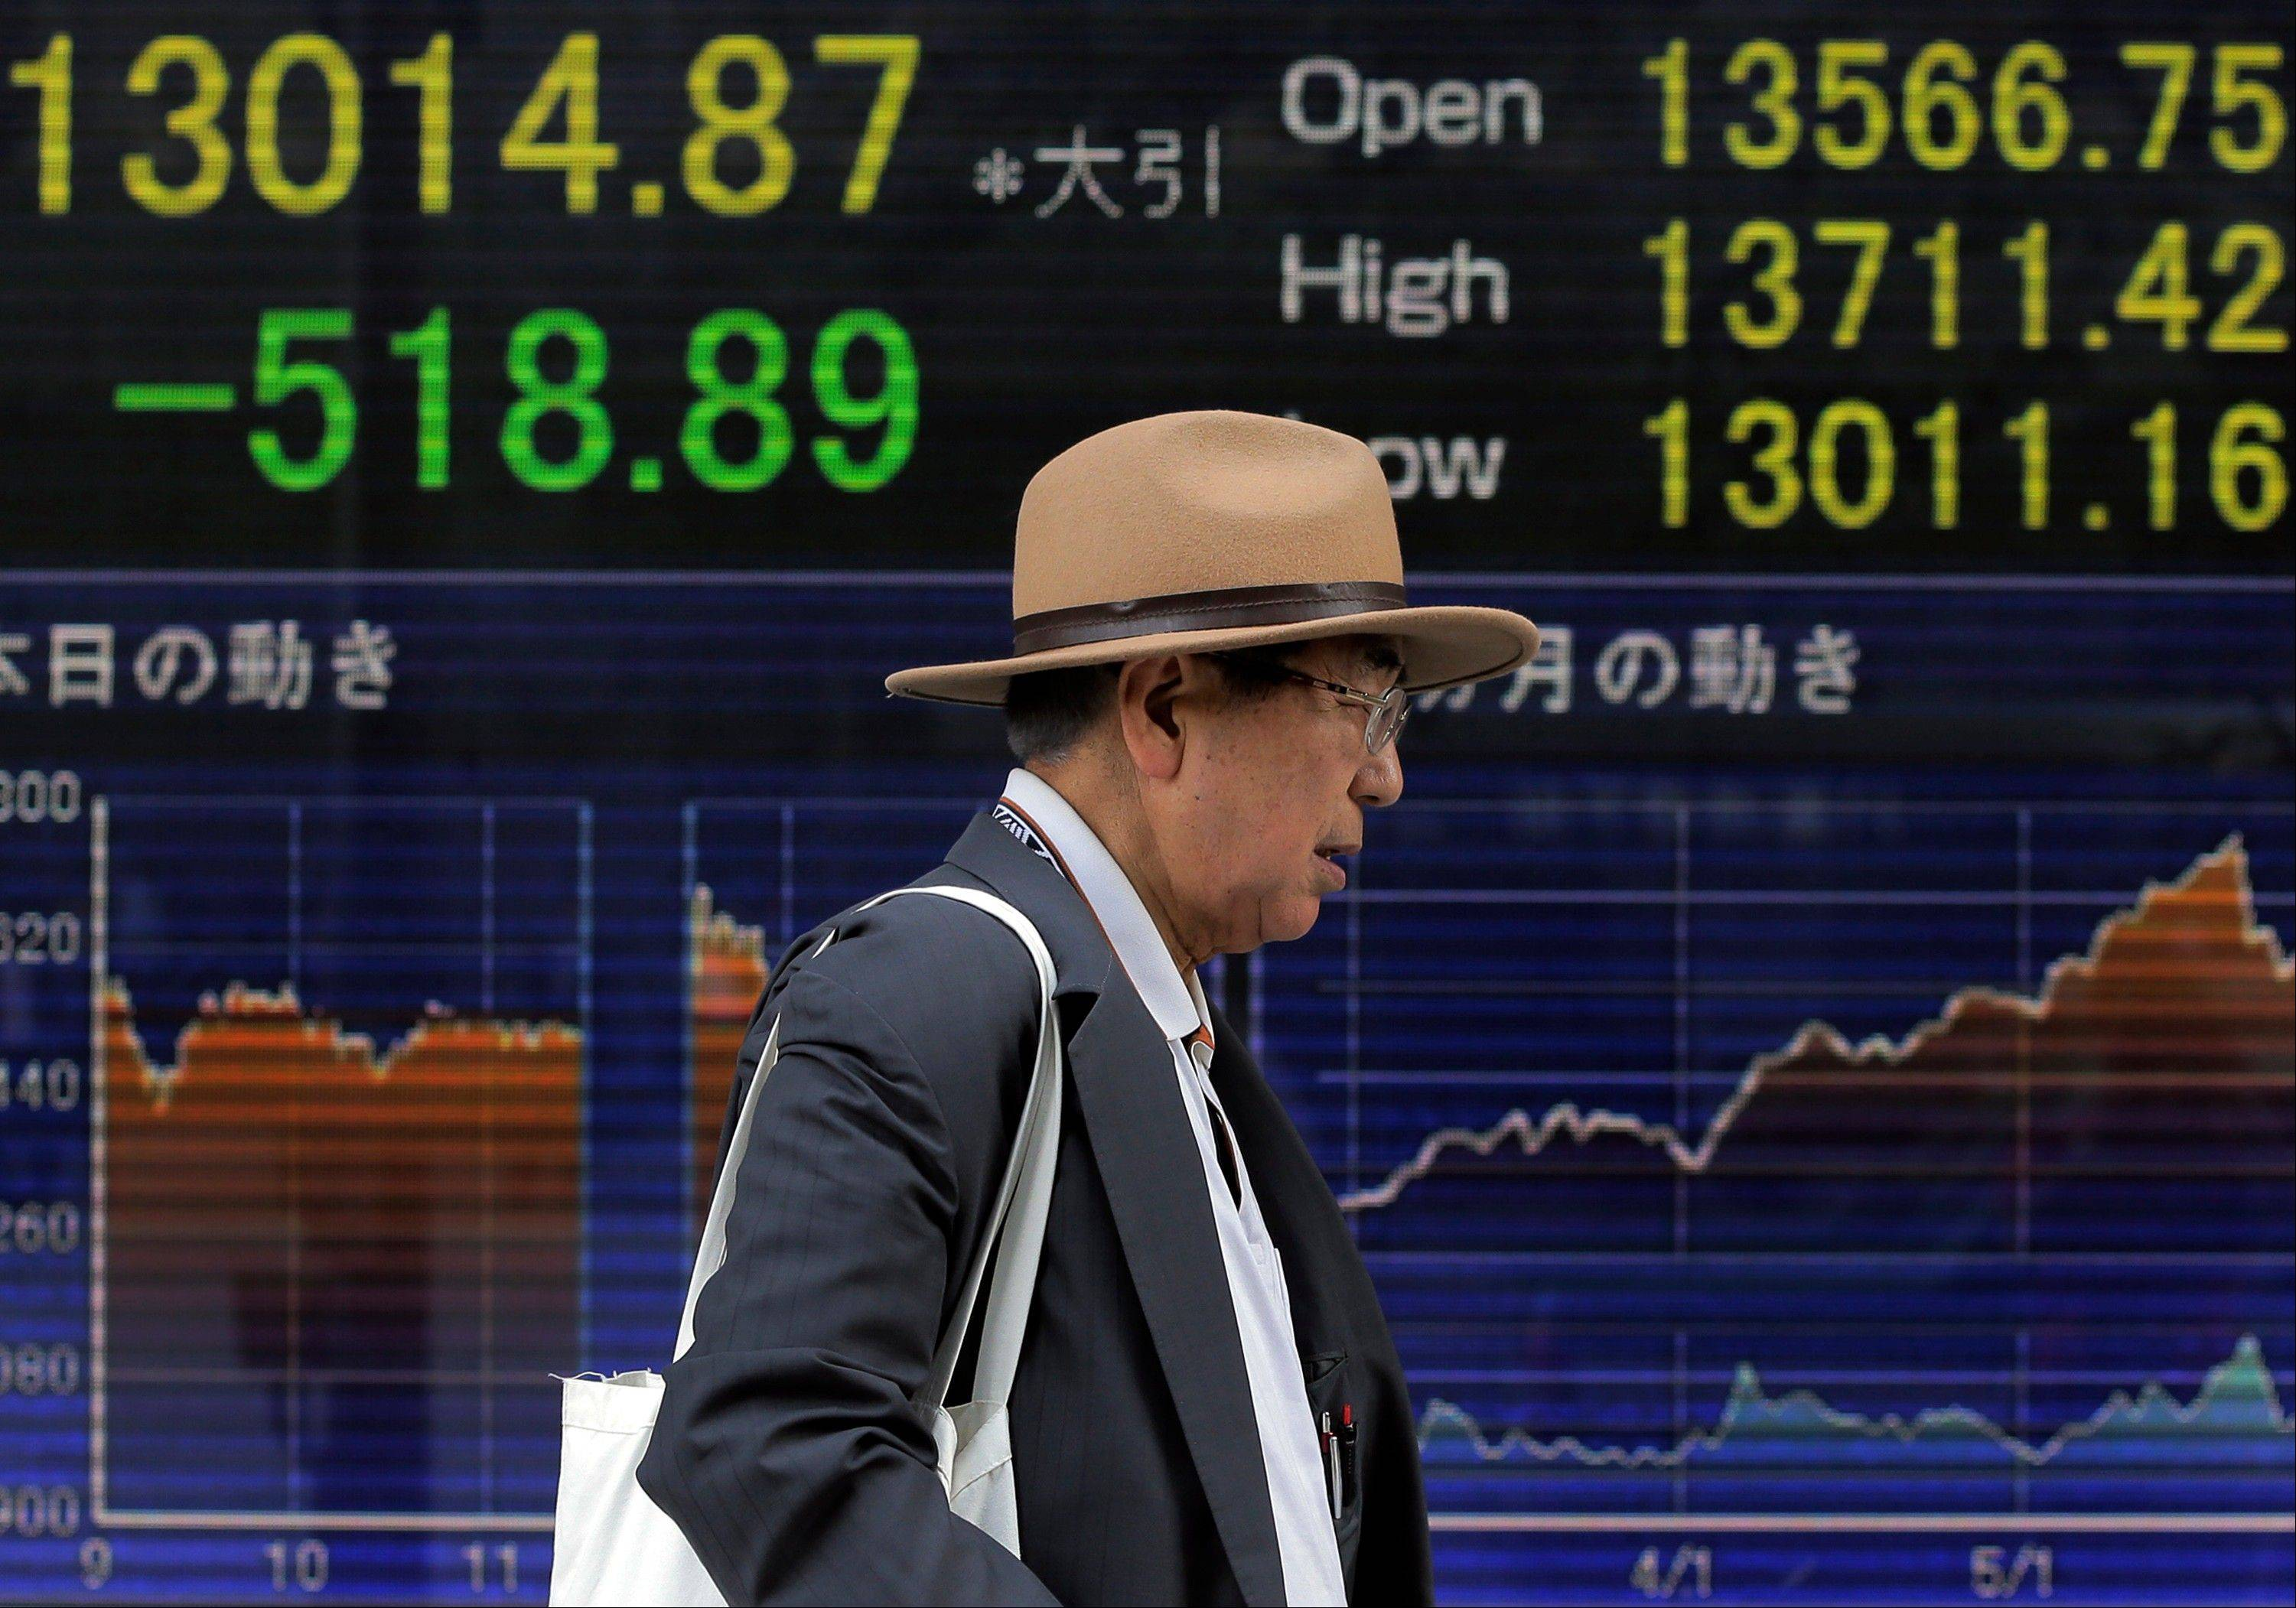 A man walks by an electronic stock board of a securities firm Wednesday in Tokyo. Asian stock markets fell Wednesday as signs the U.S. Federal Reserve might scale back its super-loose monetary policy caused investors to trim equity investments.